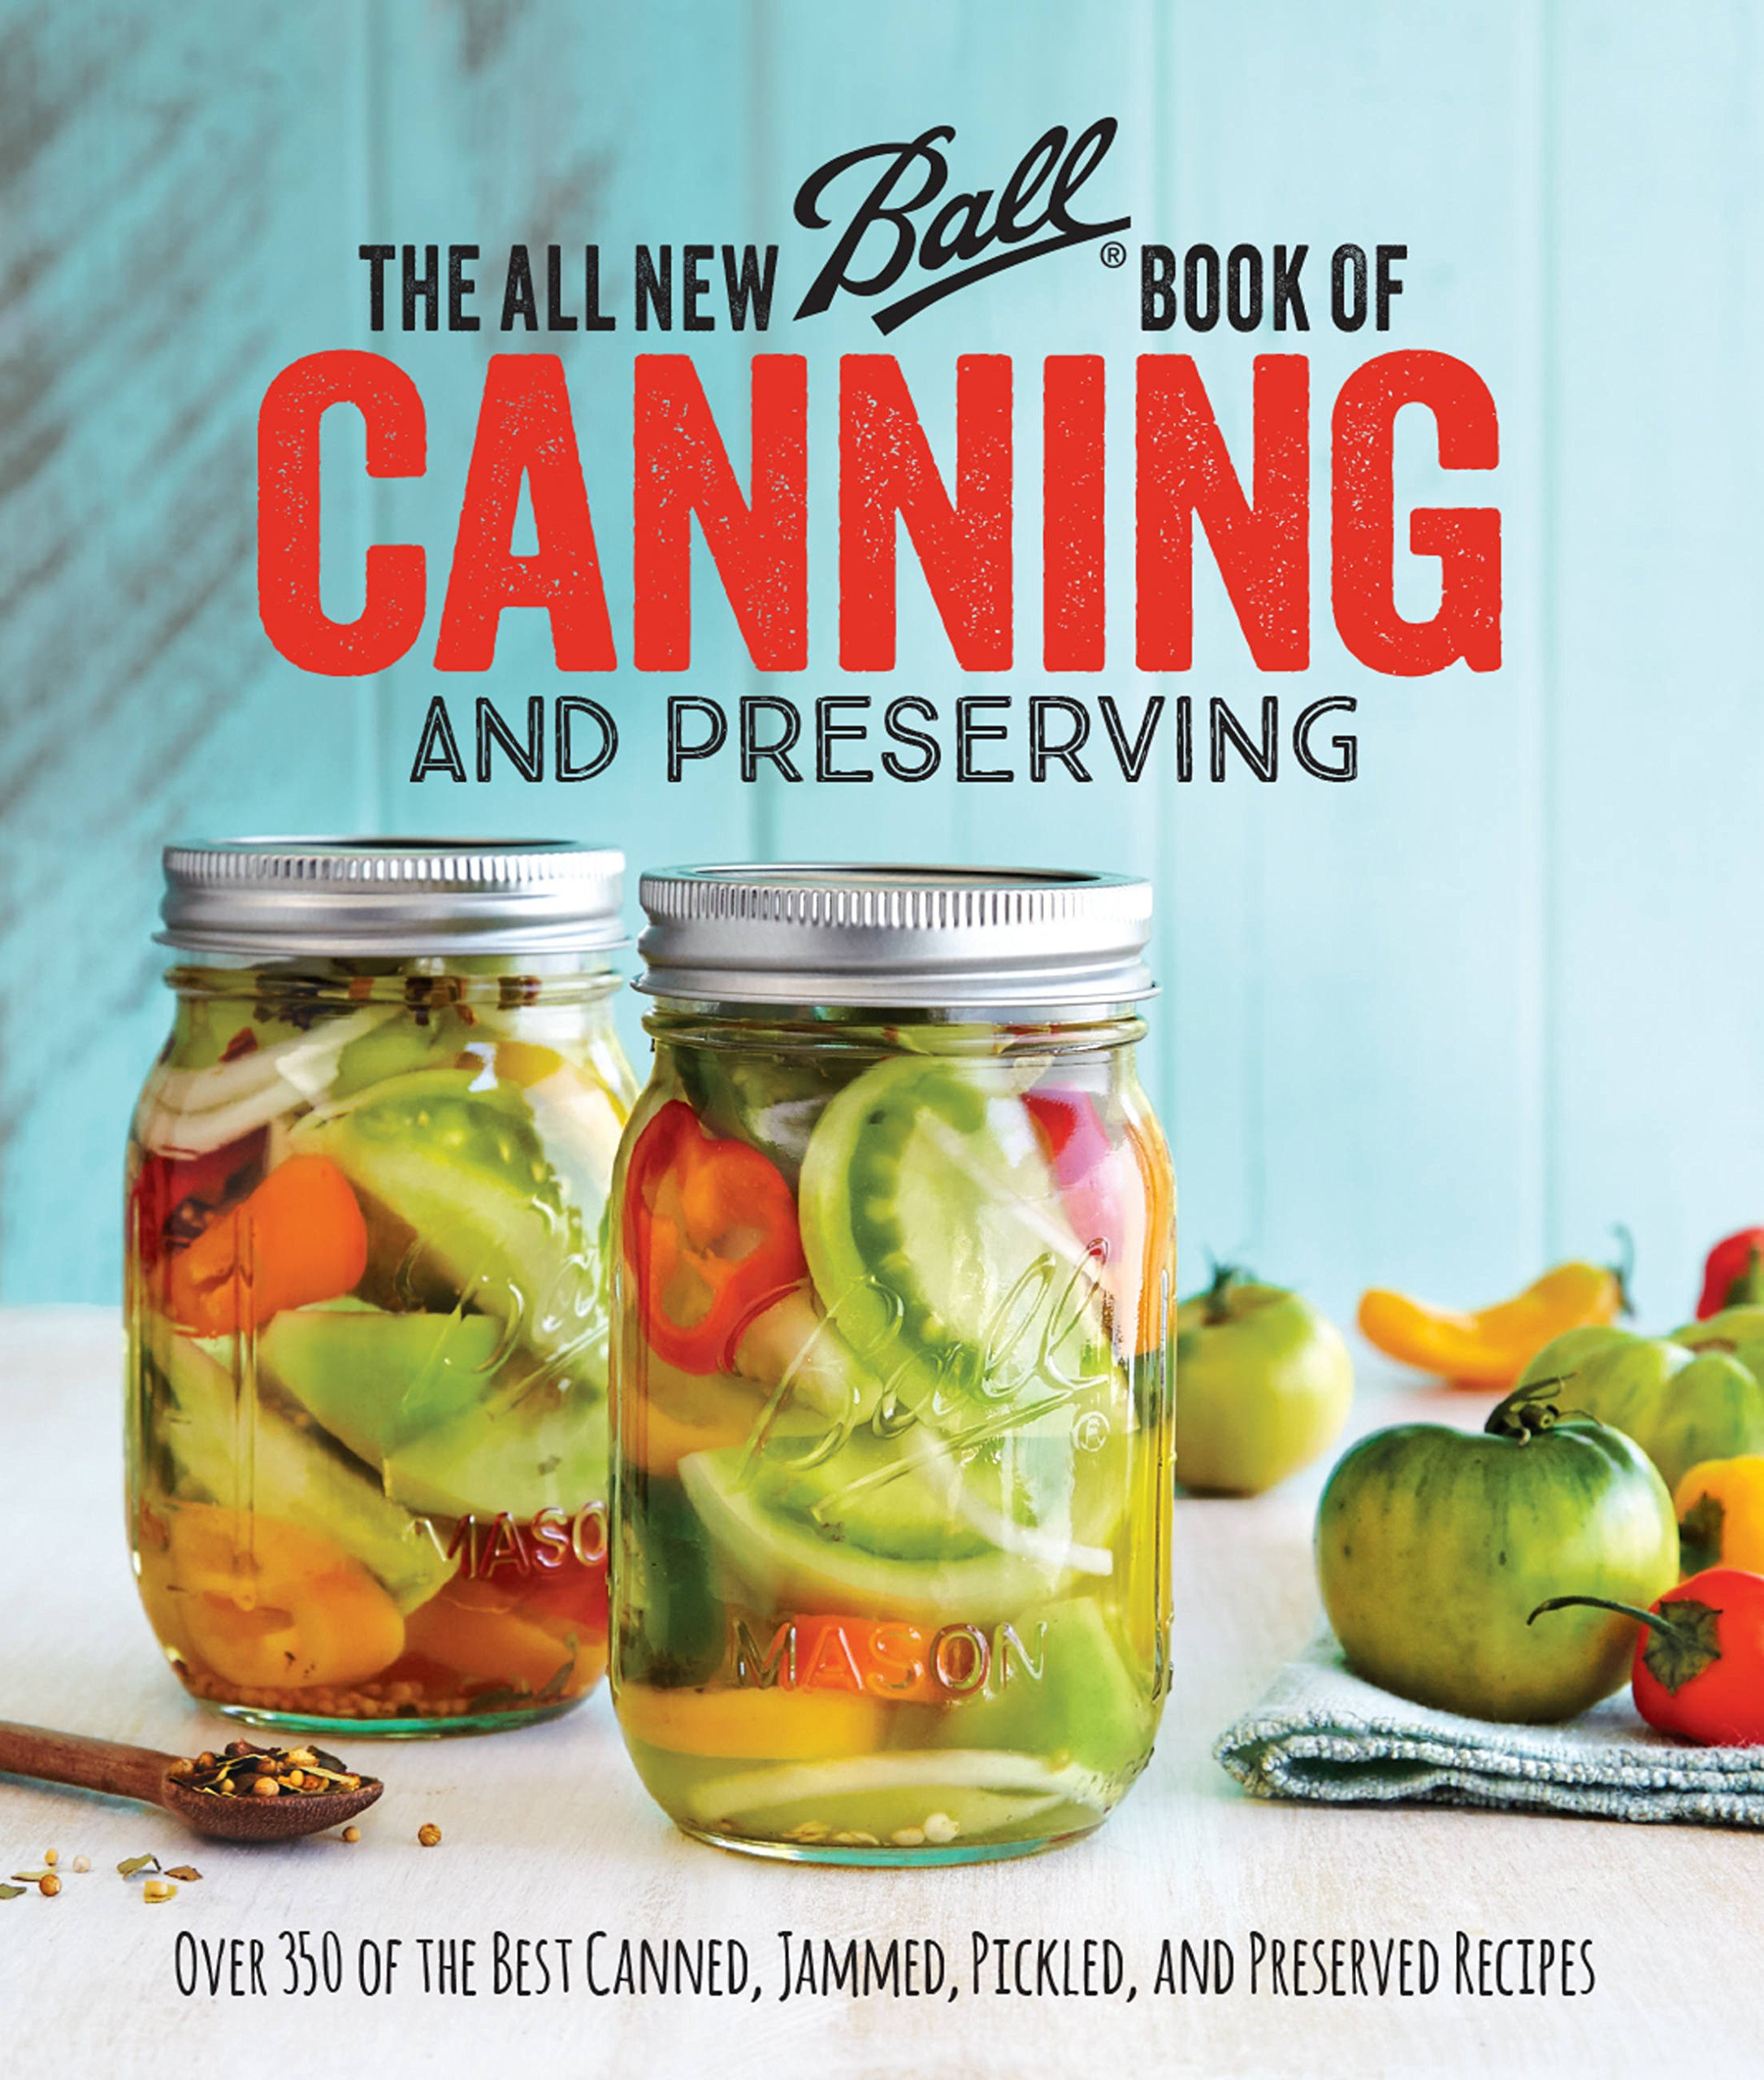 All Ball Book Canning Preserving